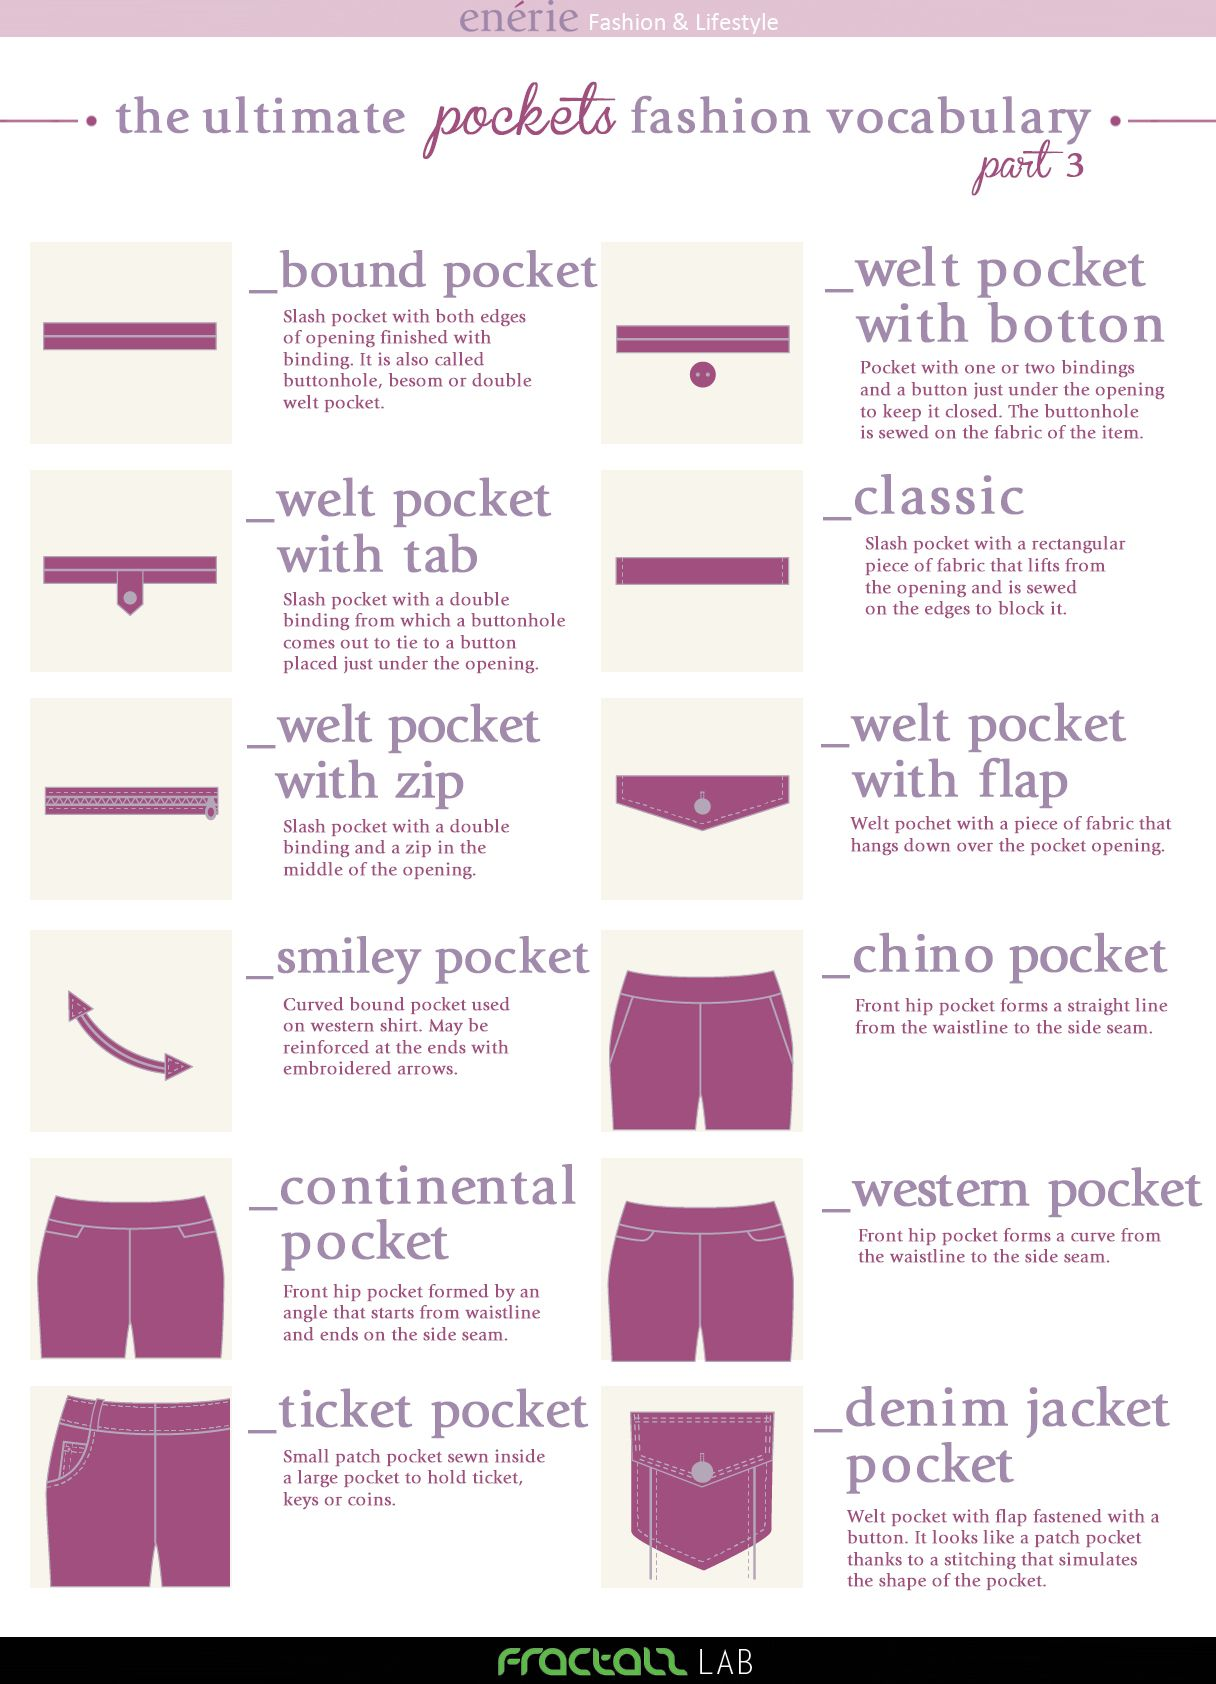 The Ultimate Pockets Fashion Vocabulary by enérie on Wordpress